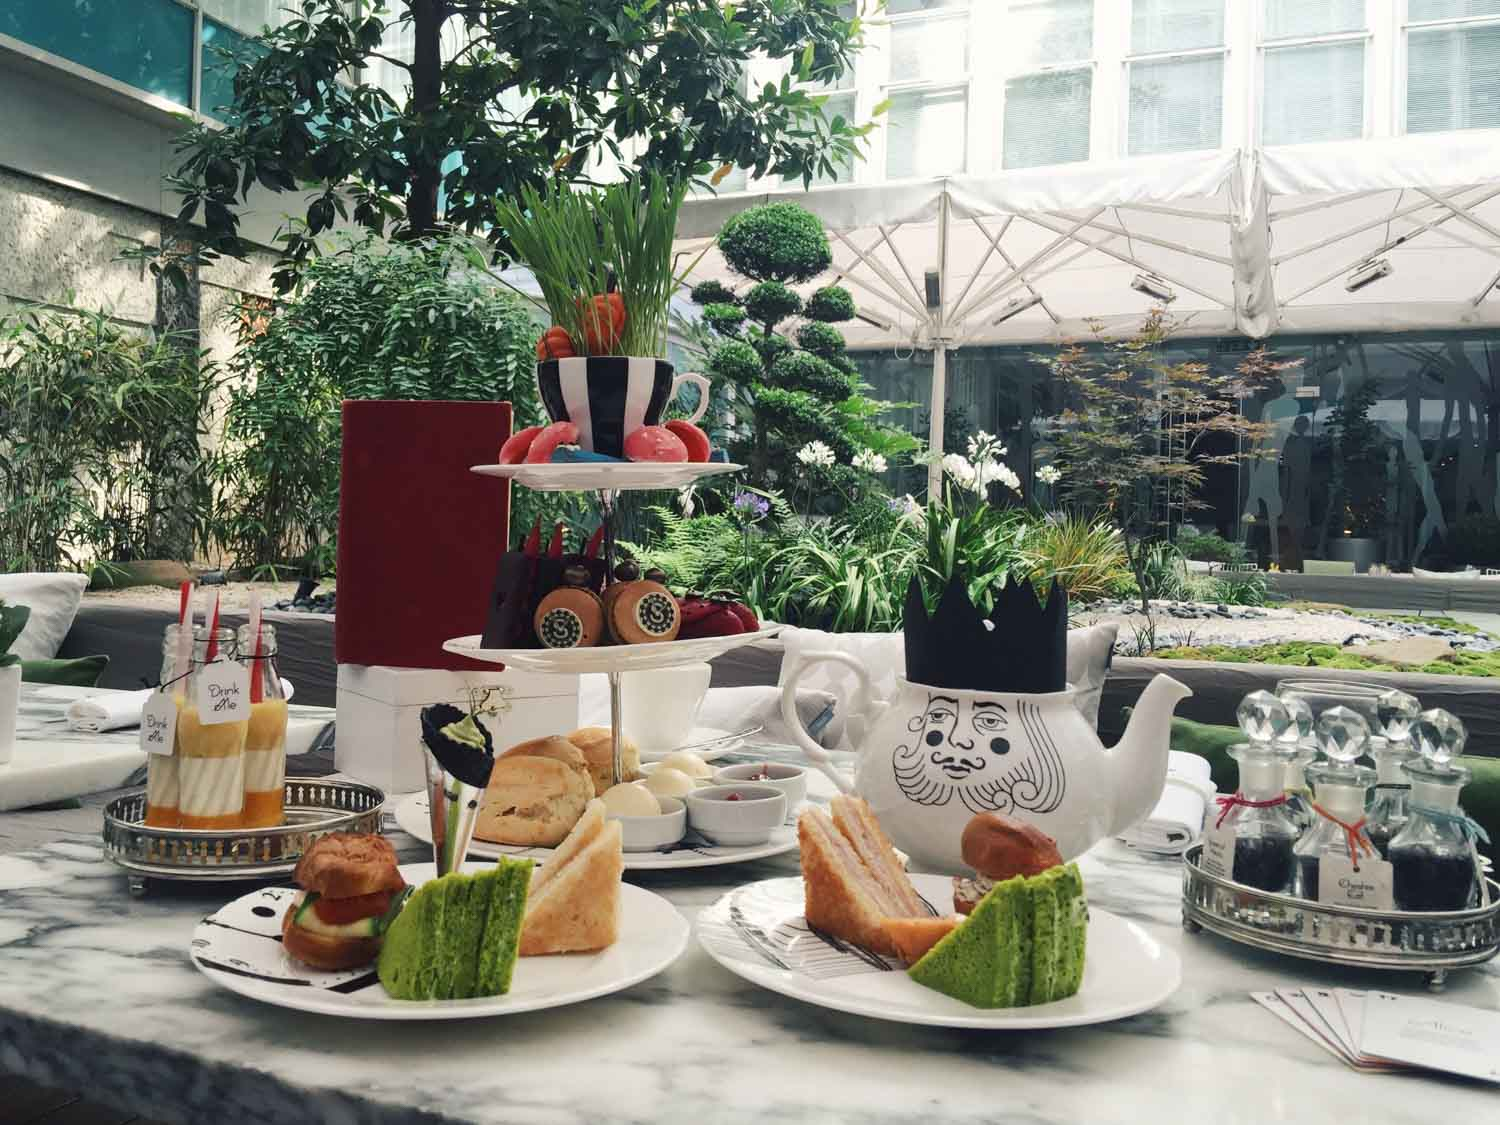 Best afternoon teas in London - Mad Hatters Tea Party at The Sanderson